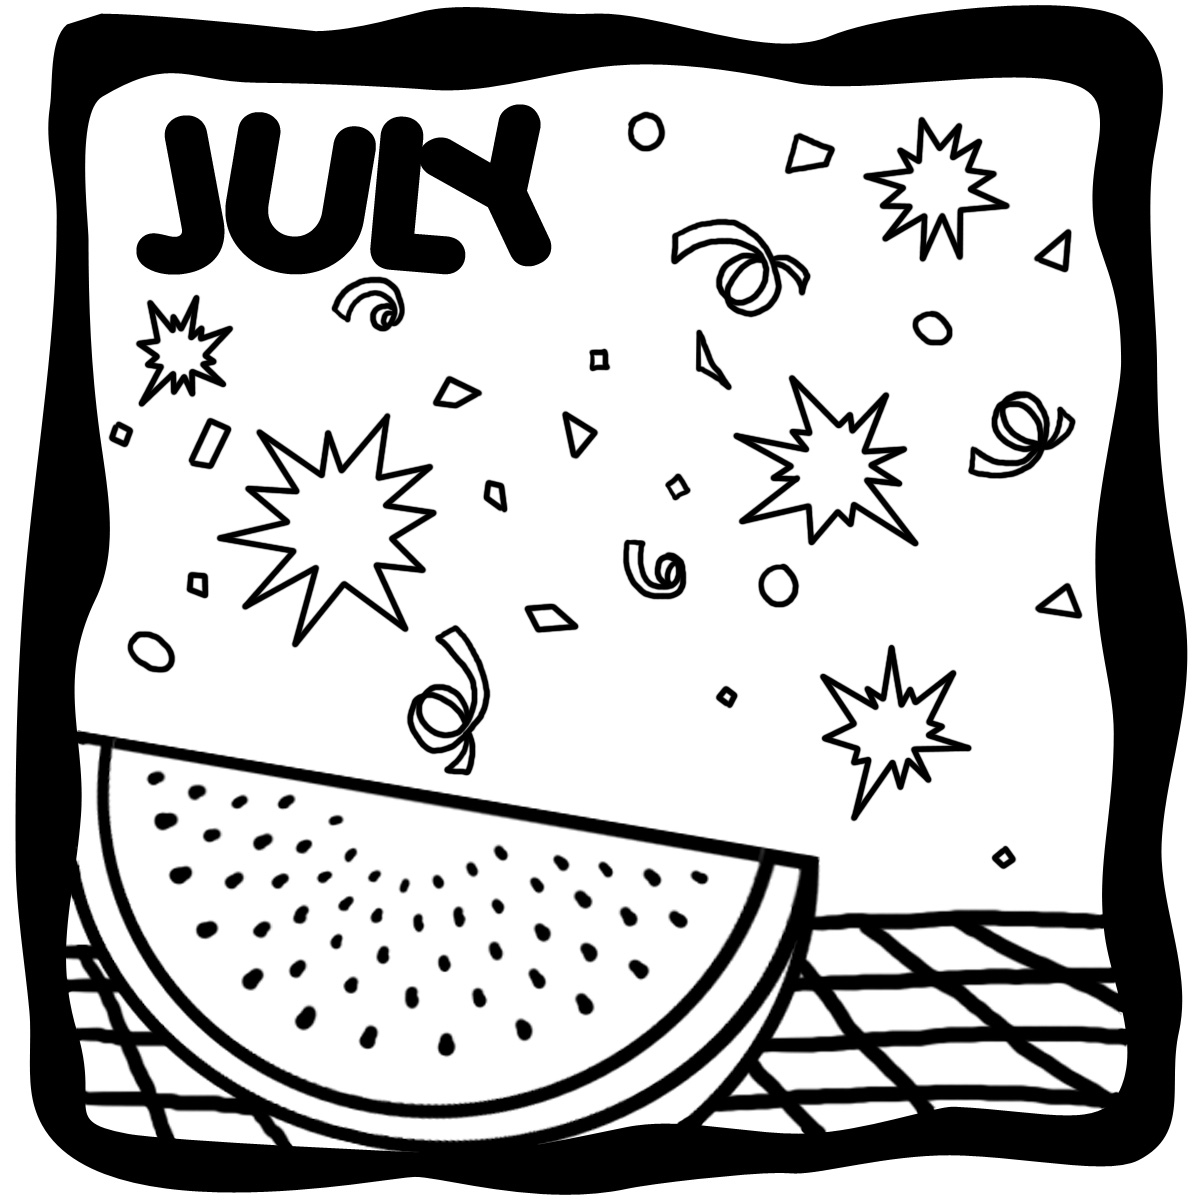 Month of july clipart graphic library stock Month Of July Black And White Clipart - Clipart Kid graphic library stock